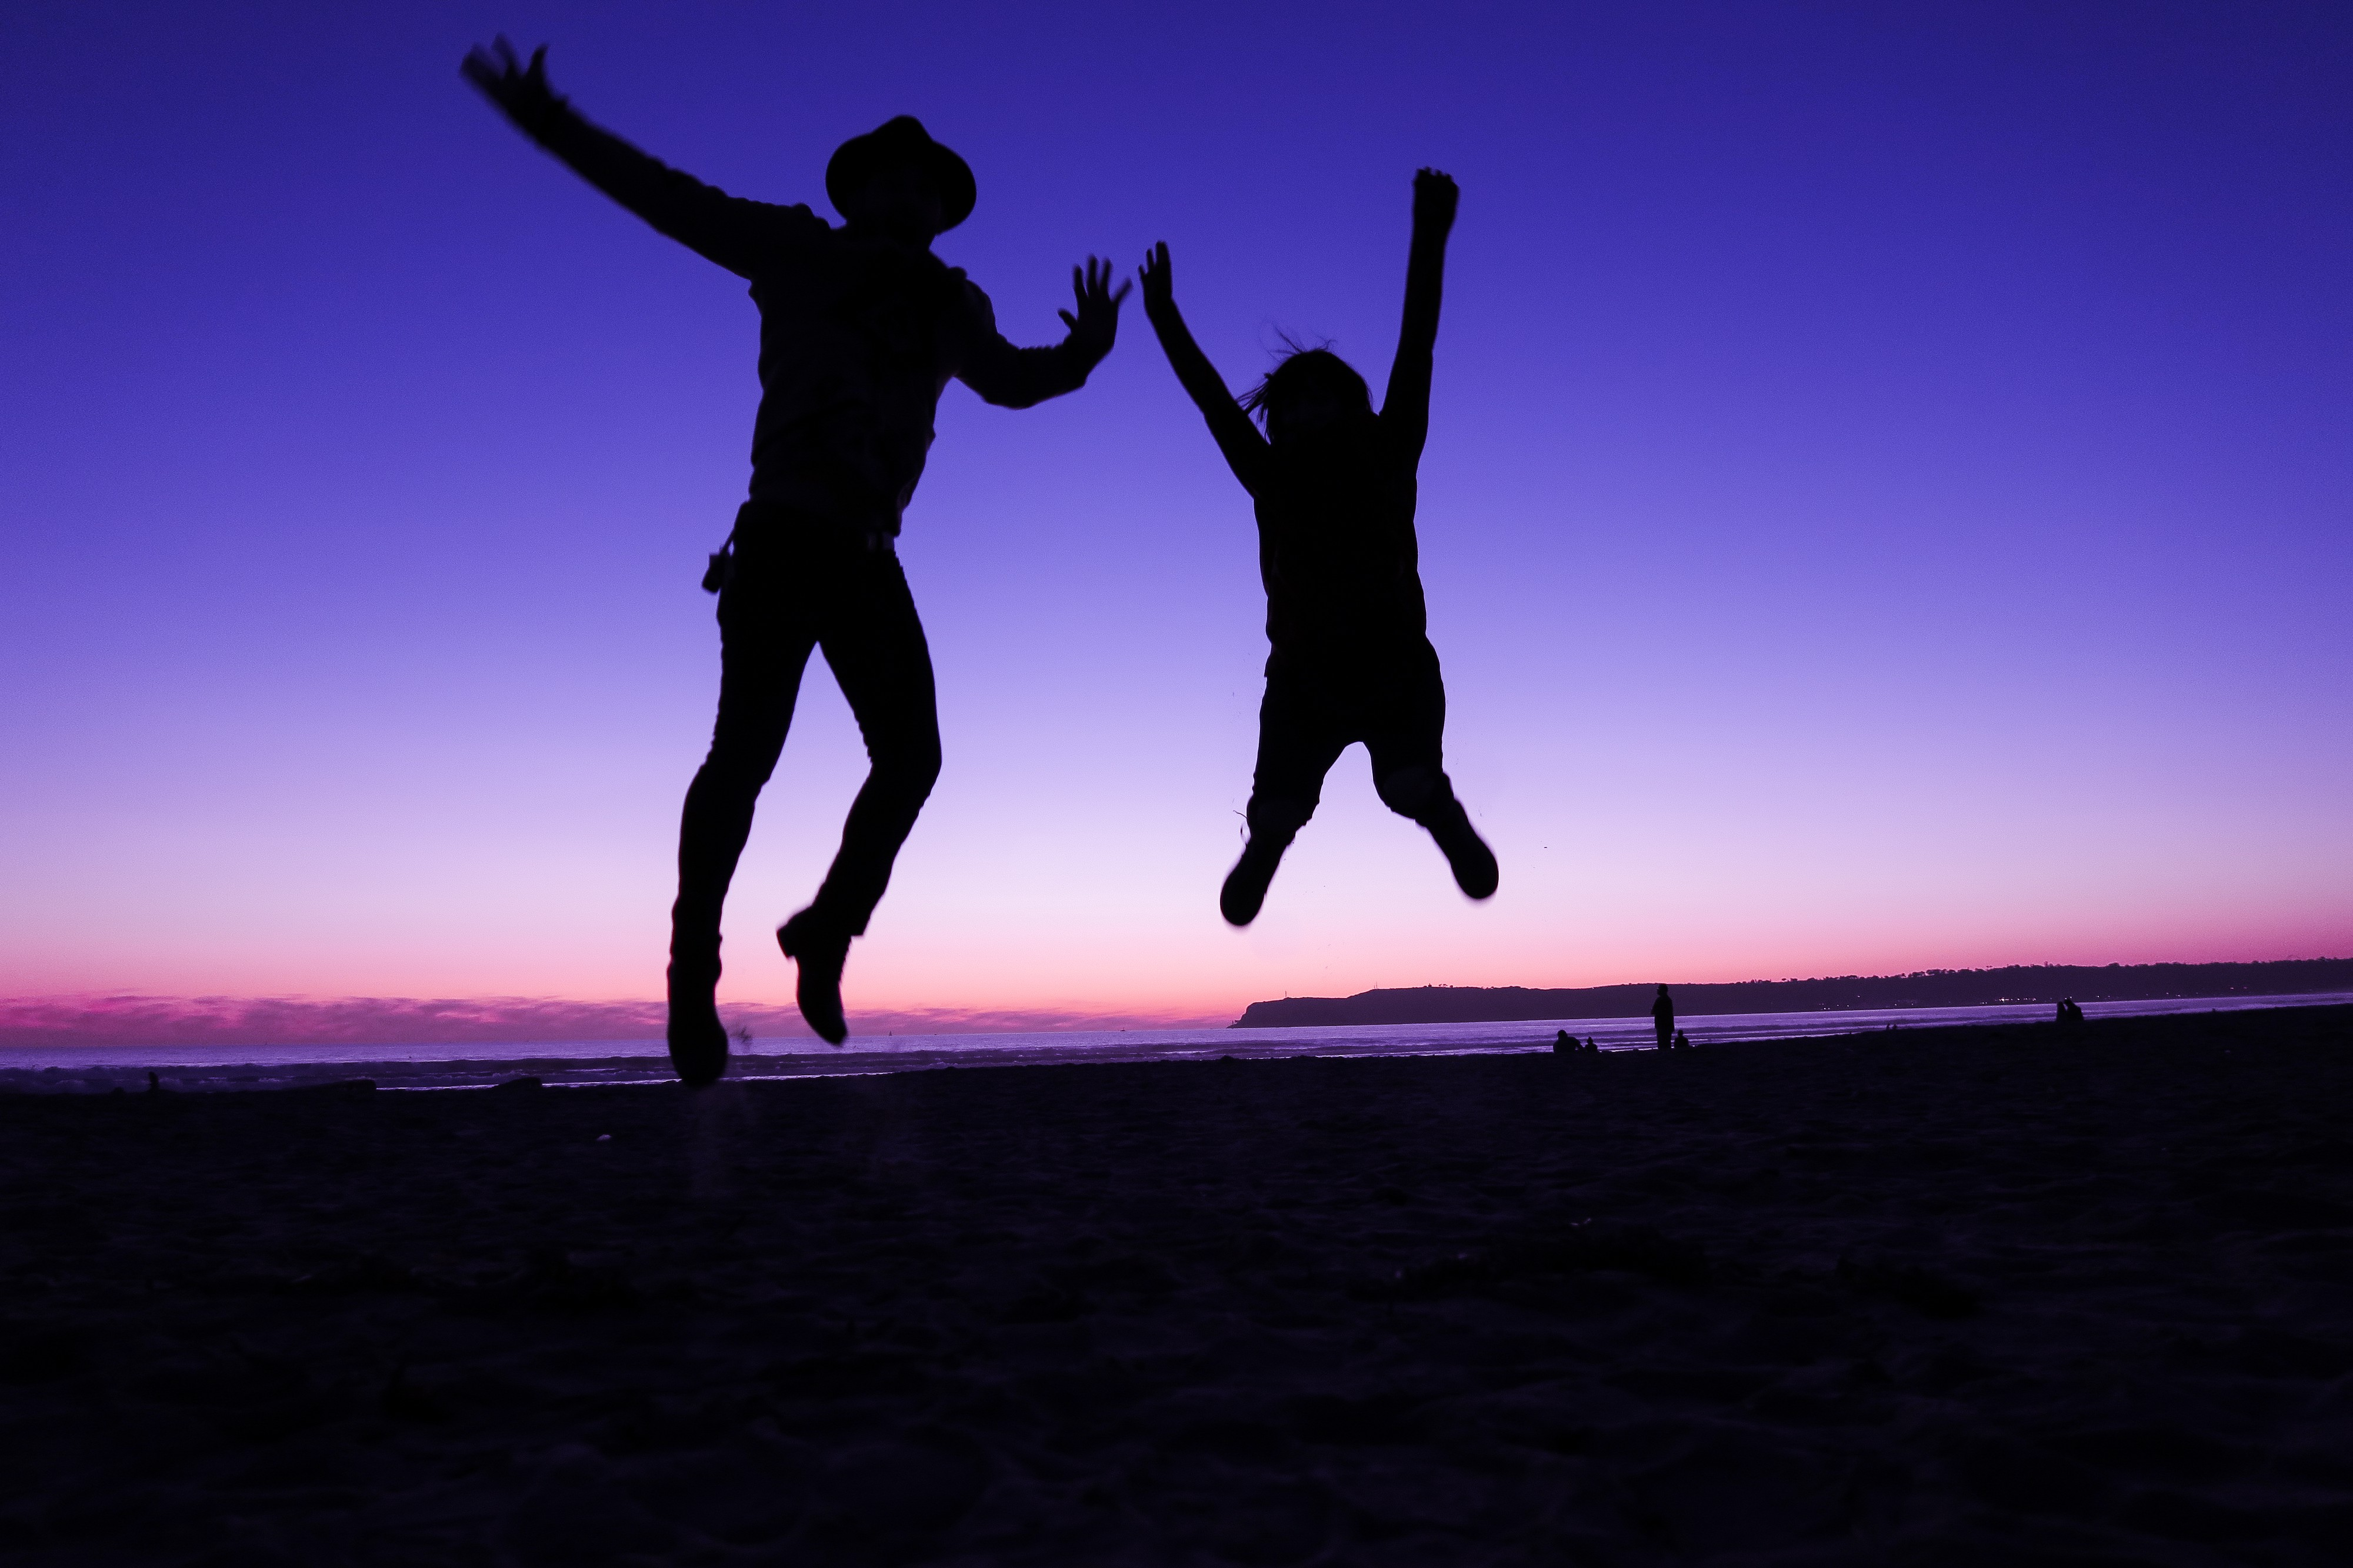 A man and child jumping on a beach with a purple sunset in the background